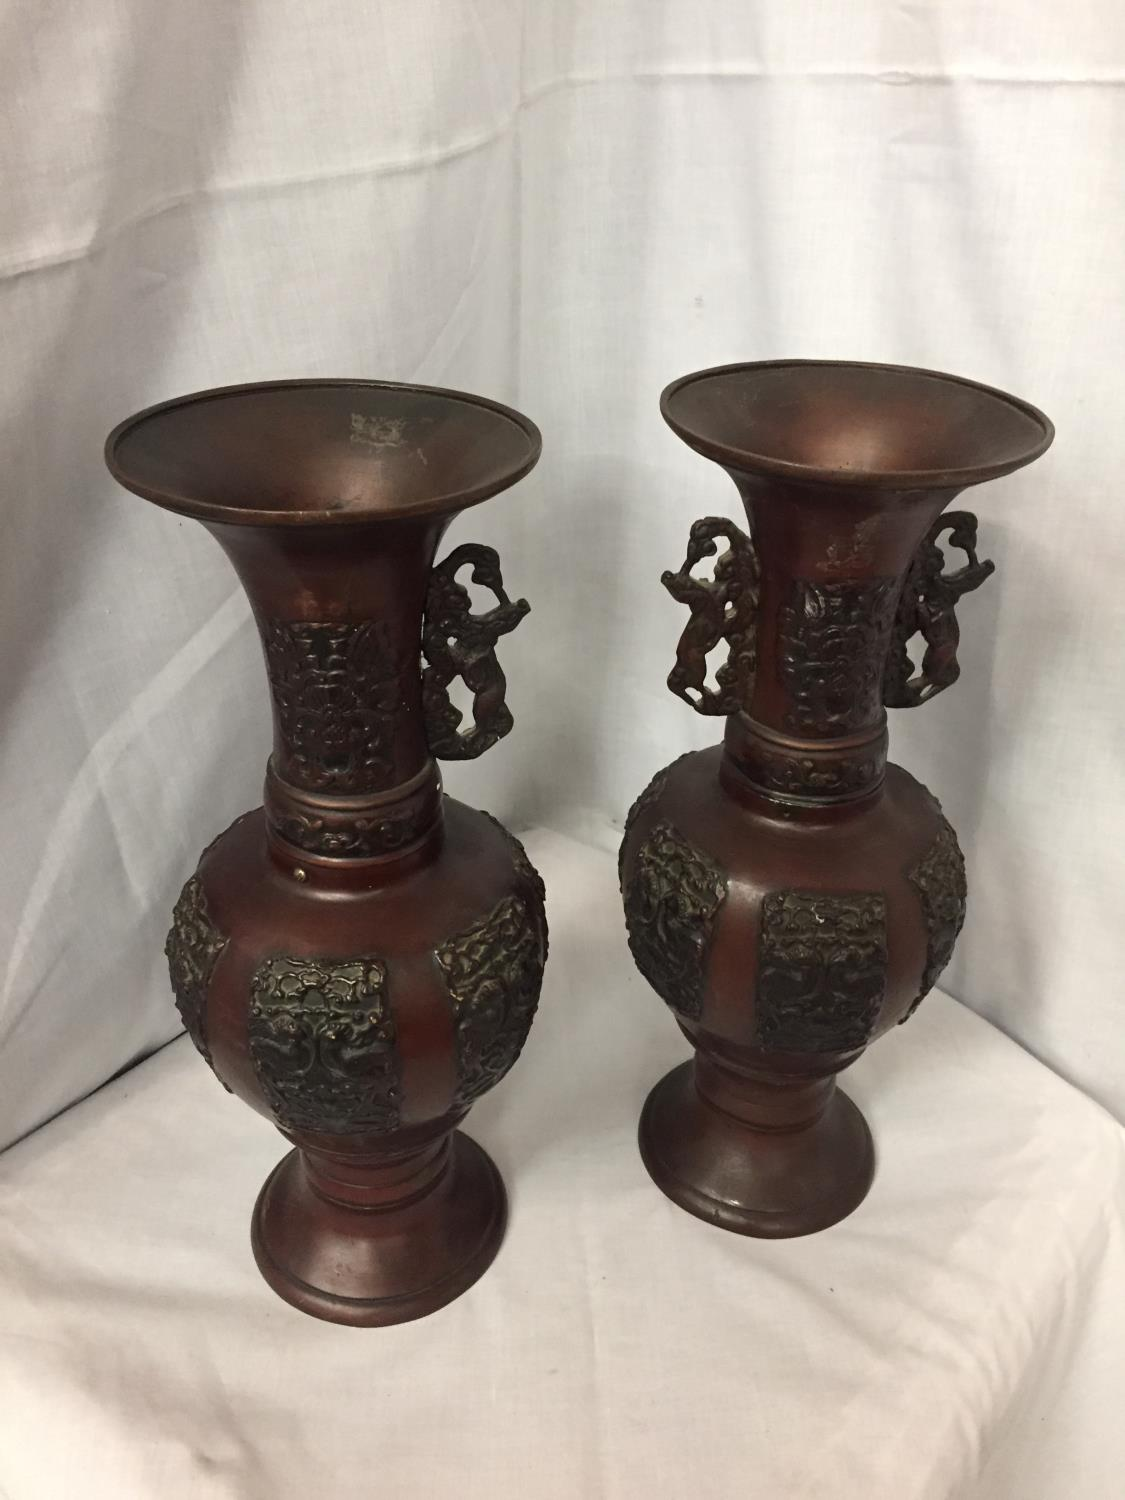 TWO DECORATIVE BRONZE URNS, ONE TOP NEEDS RE-AFFIXING, ONE MISSING HANDLE 38CM HIGH